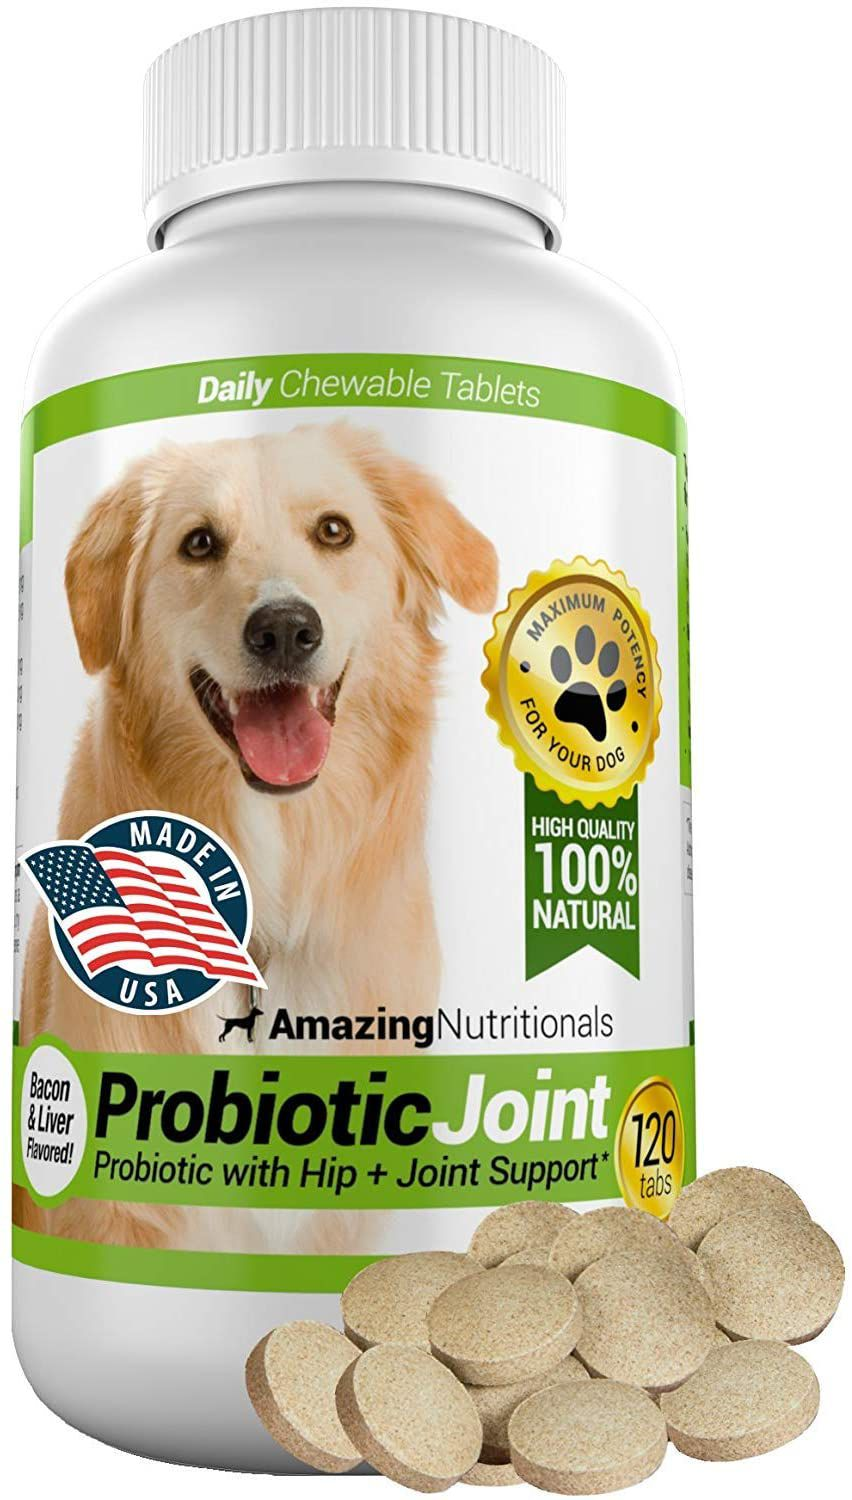 Amazing Nutritionals Probiotic Joint Chewable Tablets